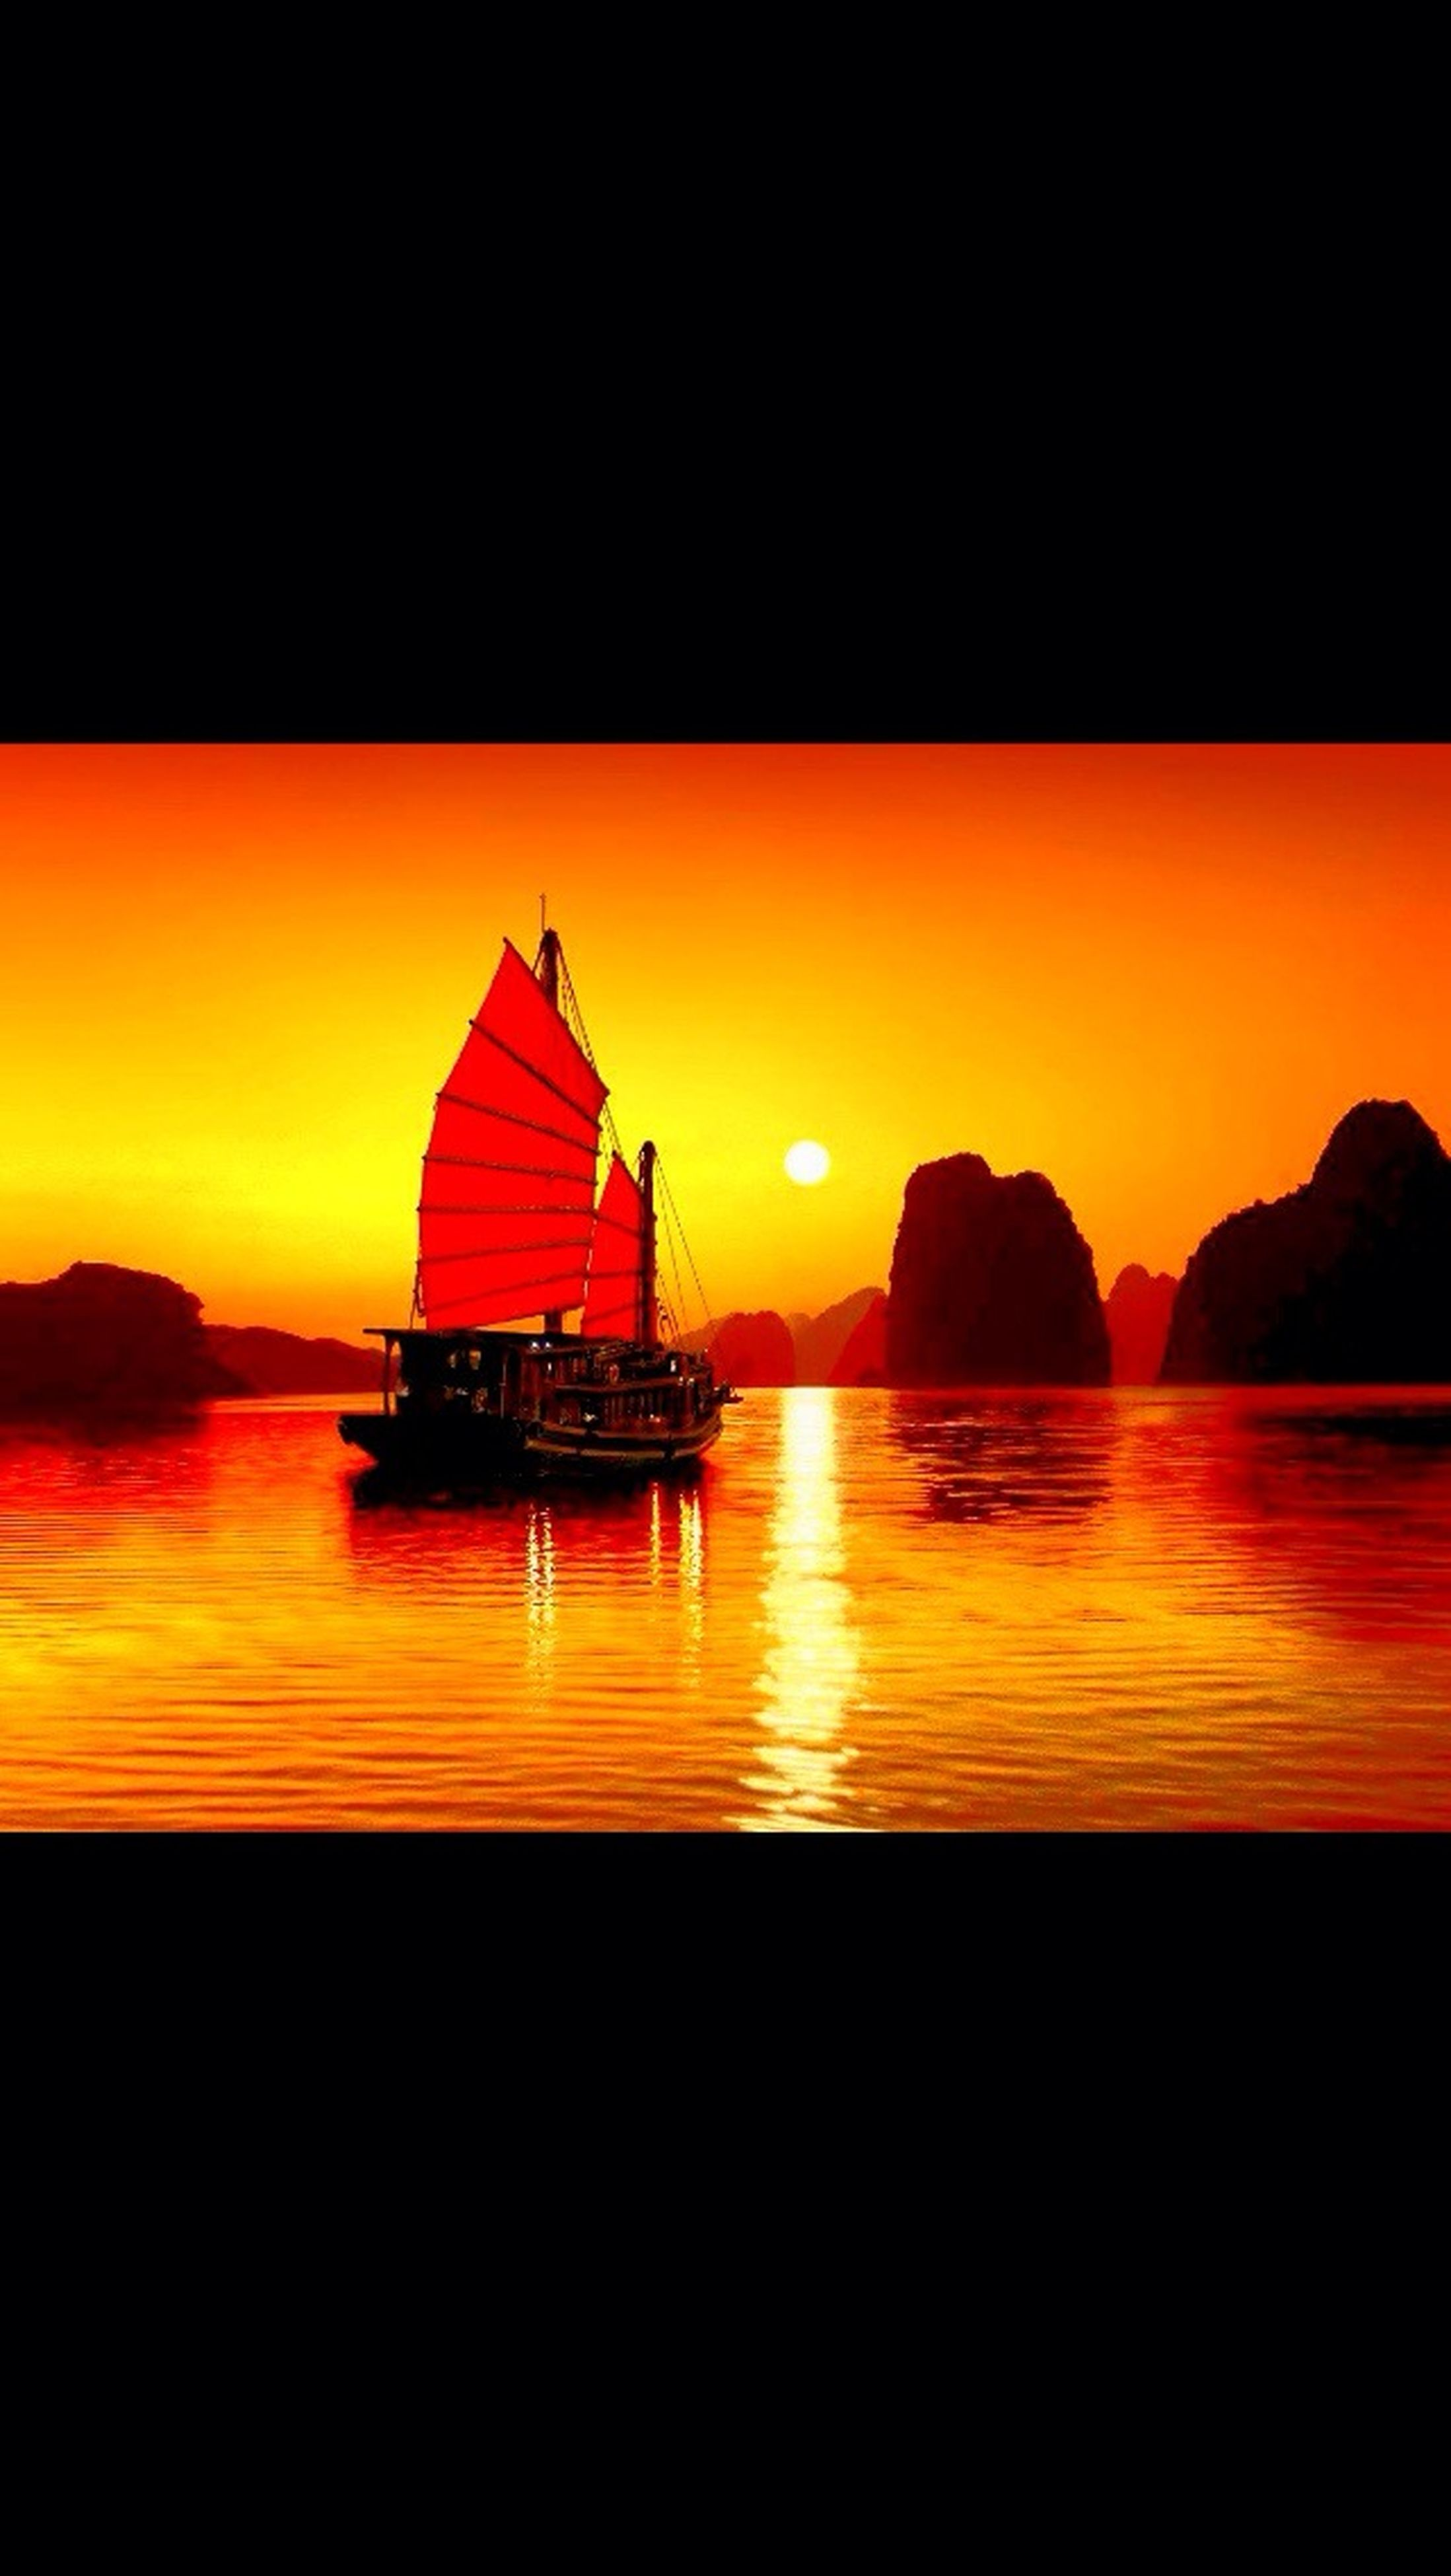 sunset, water, orange color, sea, copy space, silhouette, nautical vessel, scenics, tranquil scene, reflection, beauty in nature, boat, tranquility, transportation, clear sky, sun, idyllic, nature, mode of transport, waterfront